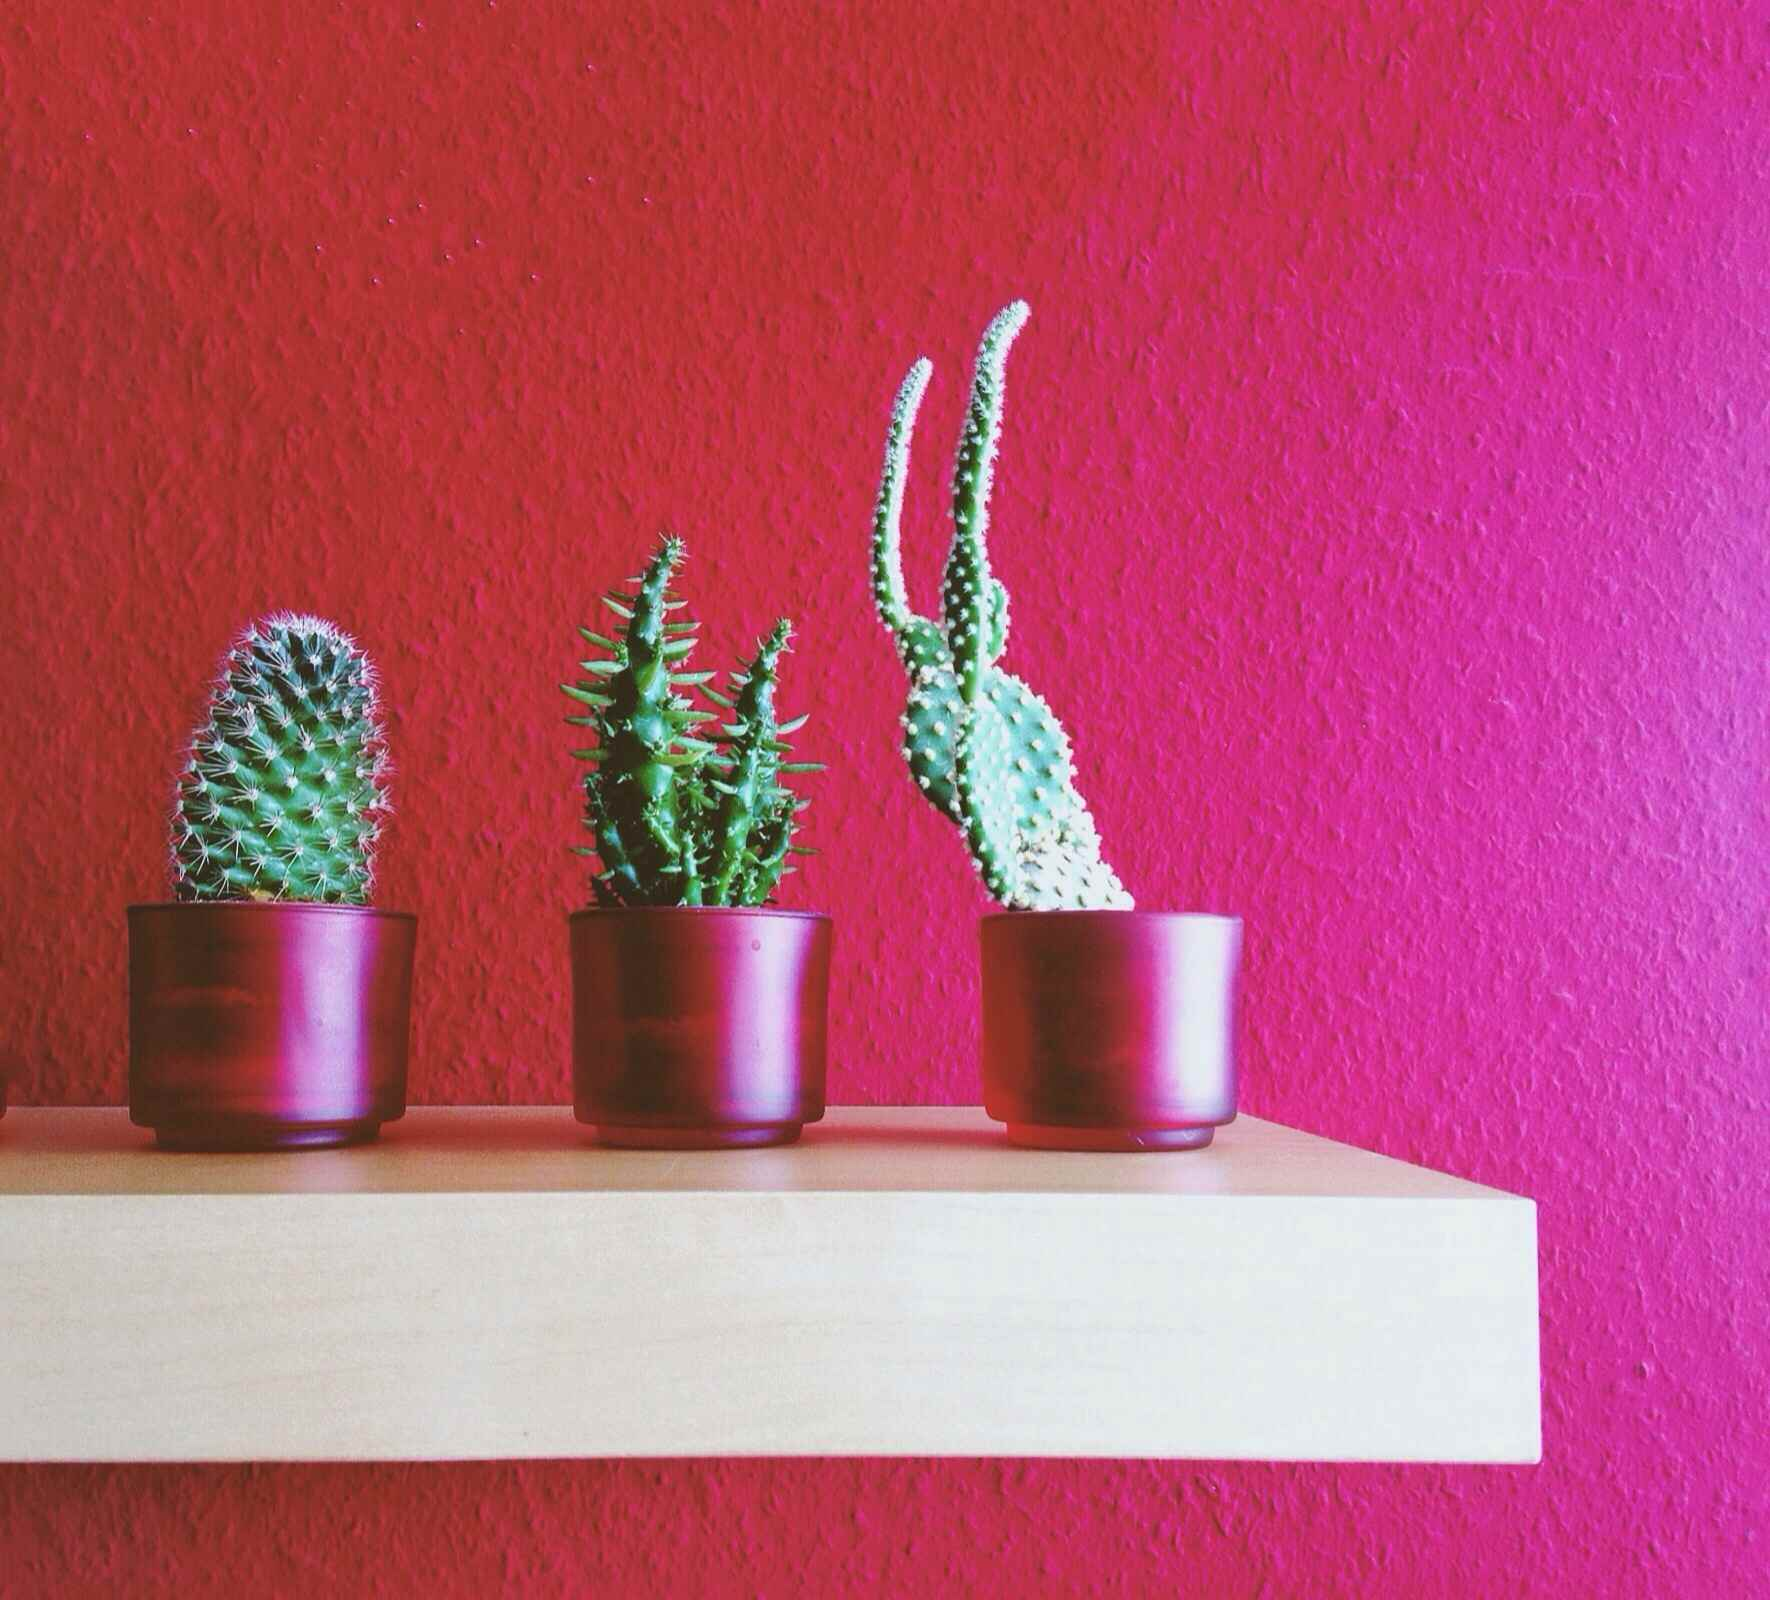 Three cactus plants sit on a white shelf in front of a red wall.